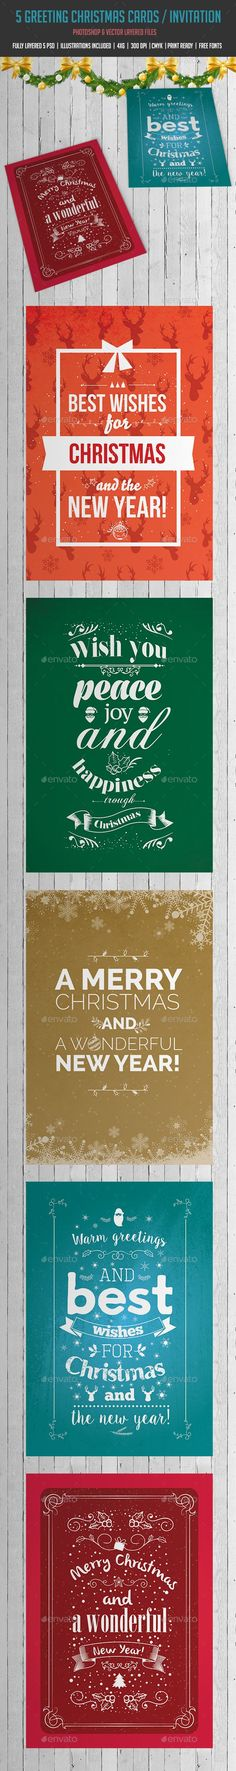 Download Free Christmas Greeting Card Template-1001 in CorelDraw - free greeting cards templates for word